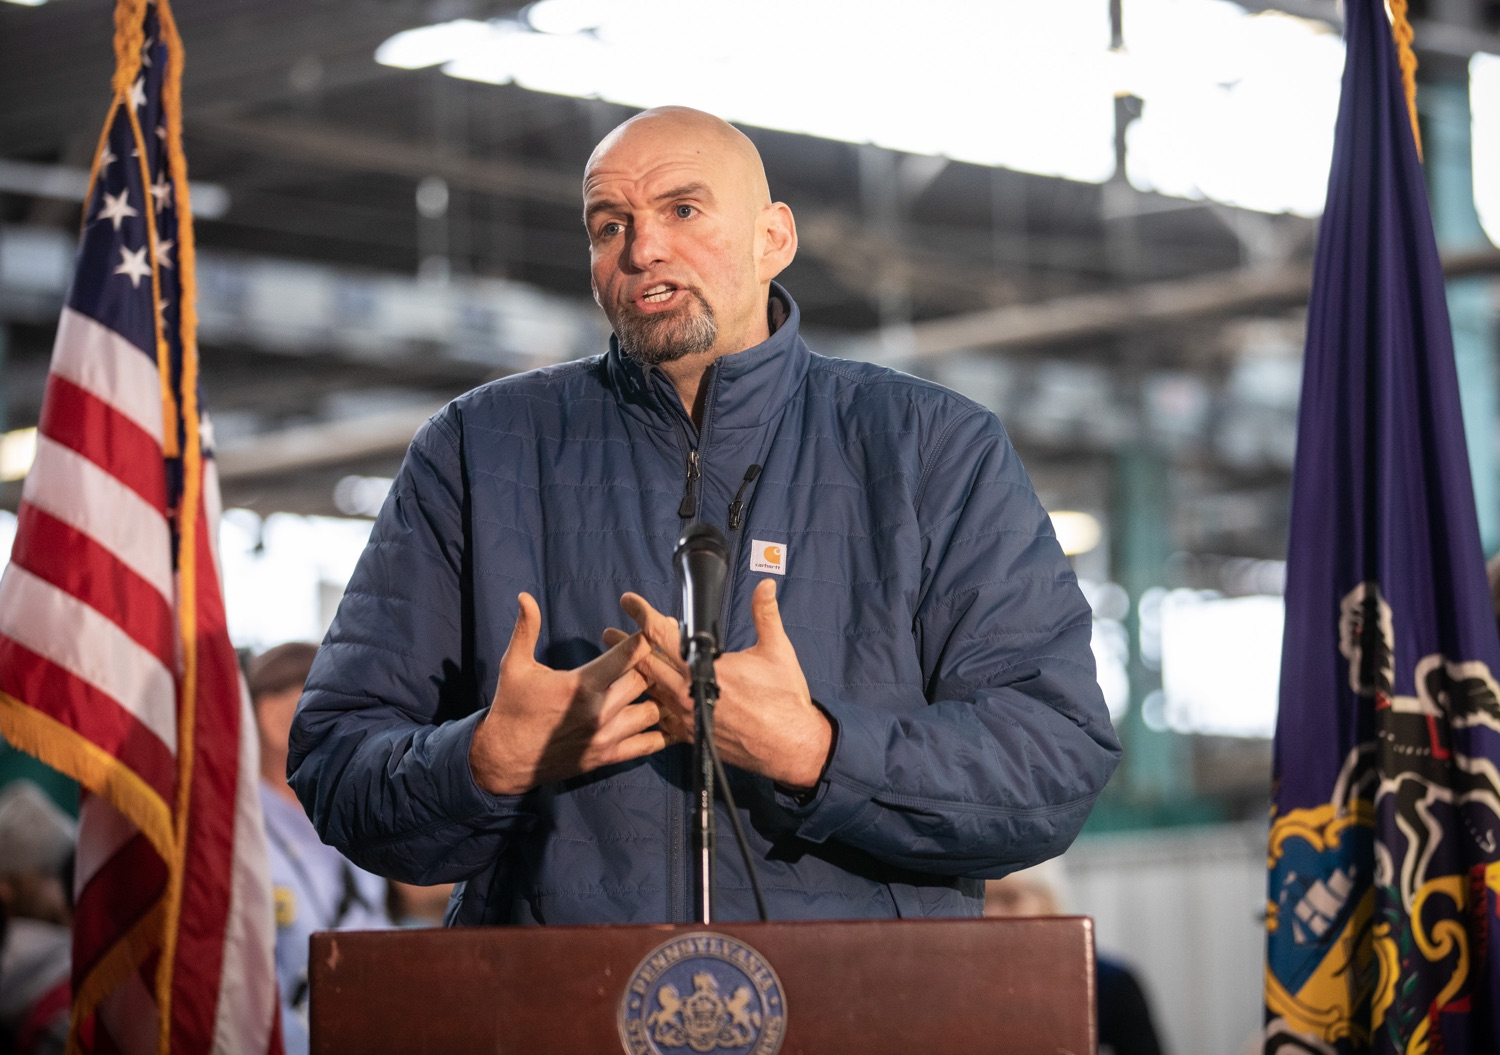 "<a href=""https://filesource.wostreaming.net/commonwealthofpa/photo/17646_agric_butter_sculpture_dz_016.jpg"" target=""_blank"">⇣ Download Photo<br></a>Lt. Governor John Fetterman speaking at the Pennsylvania Farm Show butter sculpture unveiling.Lt. Governor John Fetterman and Secretary of Agriculture Russell Redding today unveiled the 2020 Pennsylvania Farm Show butter sculpture, carved from a half-ton of butter depicting three of Pennsylvanias beloved professional sports mascots: Philadelphia Flyers Gritty, Philadelphia Eagles Swoop, and Pittsburgh Steelers Steely McBeam celebrating with a spread of Pennsylvania dairy products. The sculpture, a long-time Farm Show staple, encourages Pennsylvanians to be a fan of Pennsylvania dairy and give a cheer to the more than 6,200 dairy farmers in the commonwealth.  Harrisburg, PA  January 2, 2020"